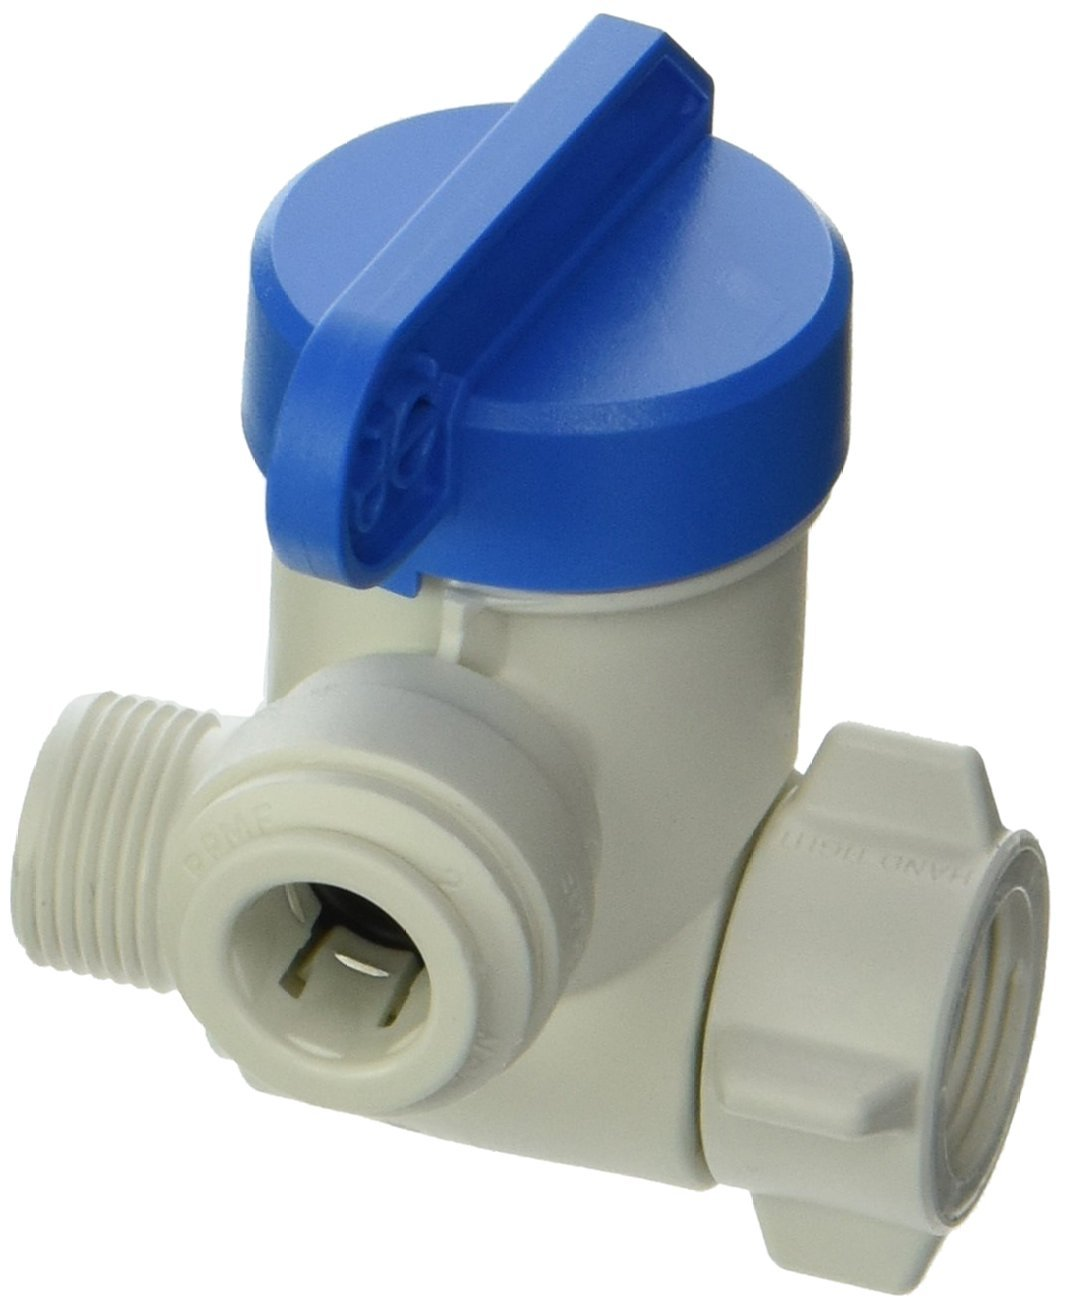 John Guest PASVPP2 Angle Stop Adapter Valve, Push-to-Connect, 3/8 x 3/8 x 3/8 Inch